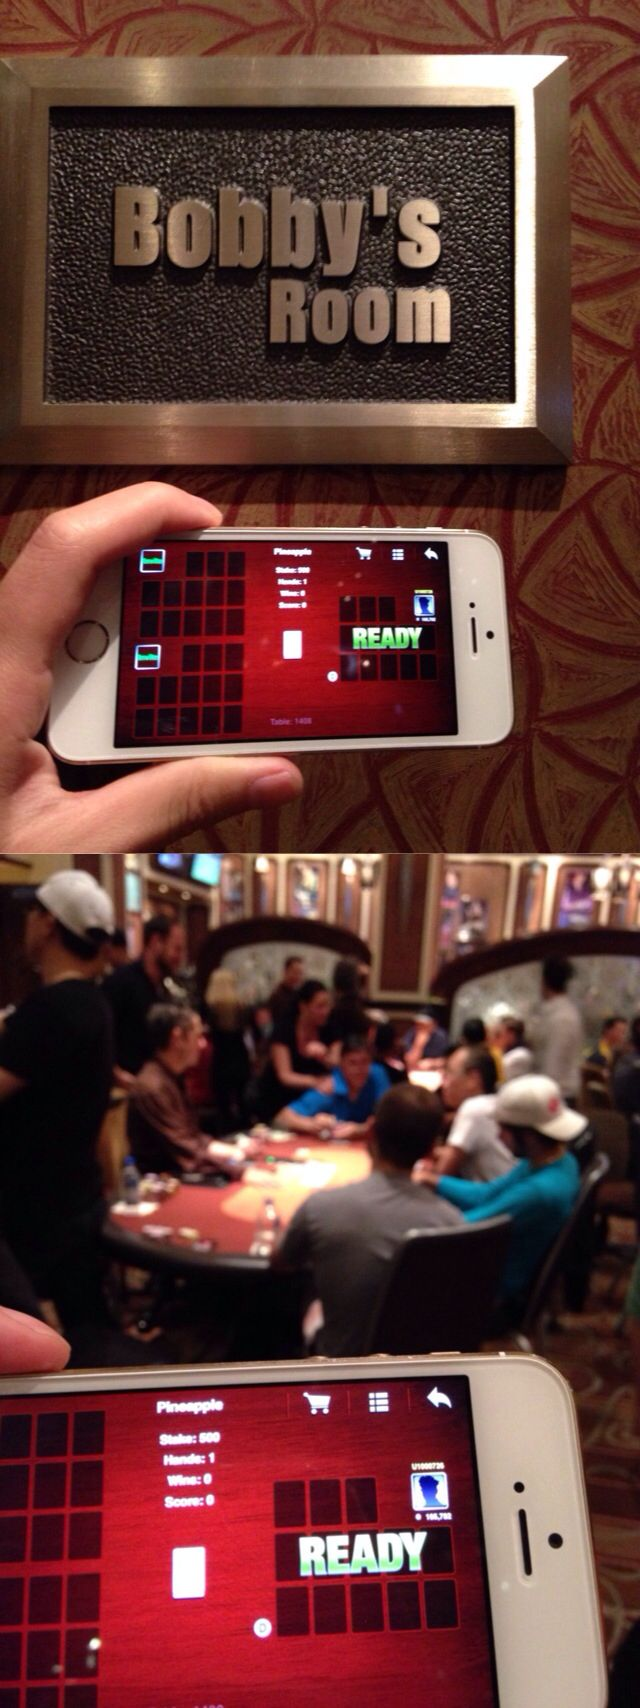 Oye Chinese Poker in Bobby's Room, Bellagio. Thanks dude, why not show your face to surprise your fans. :)